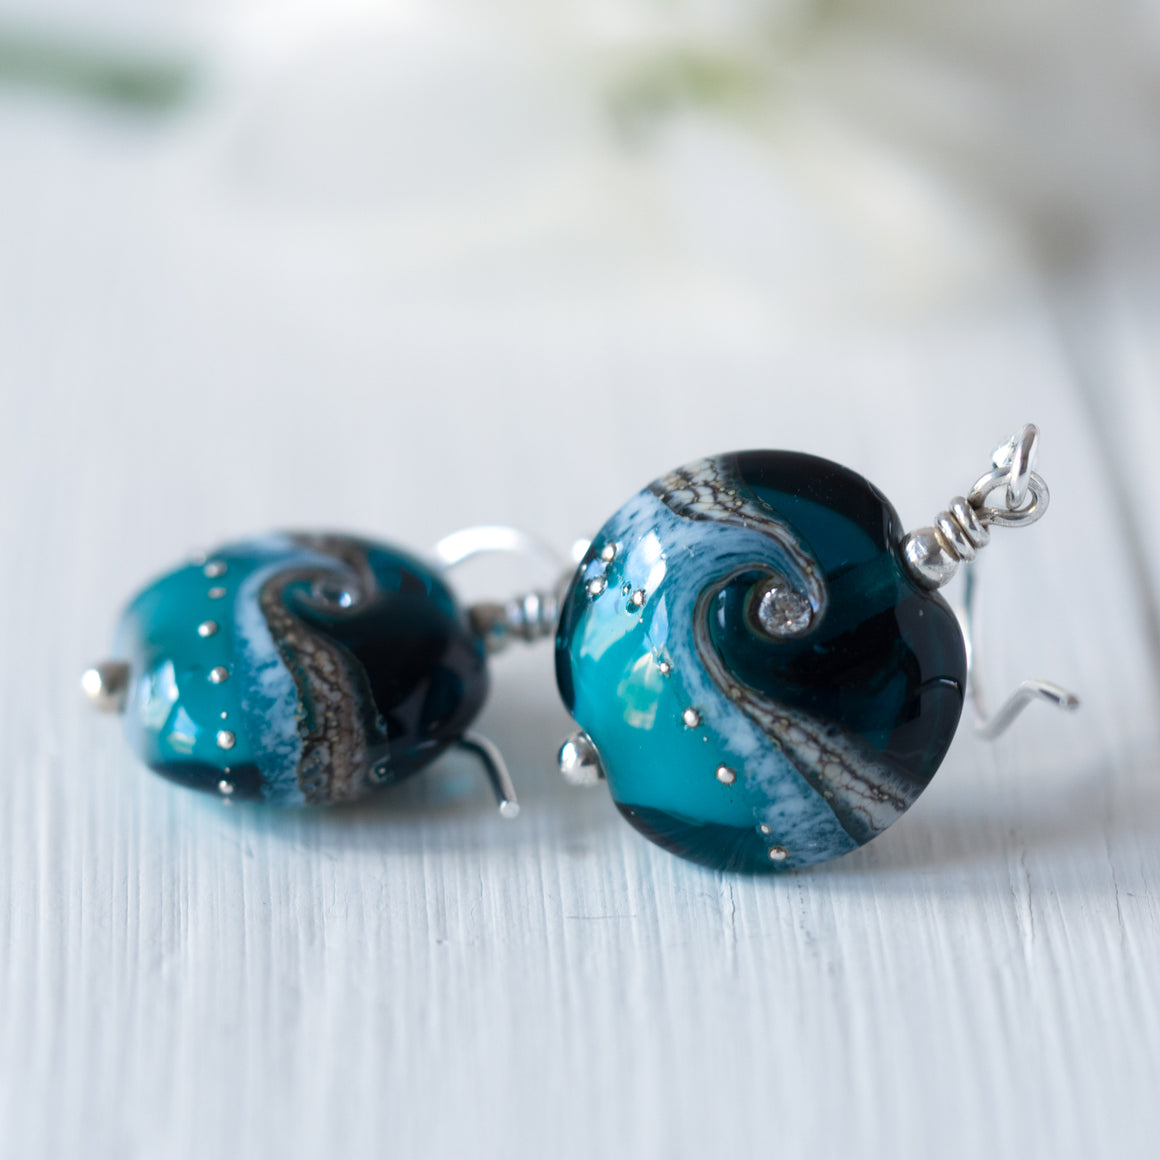 Jewel Earrings - Teal Sparkle